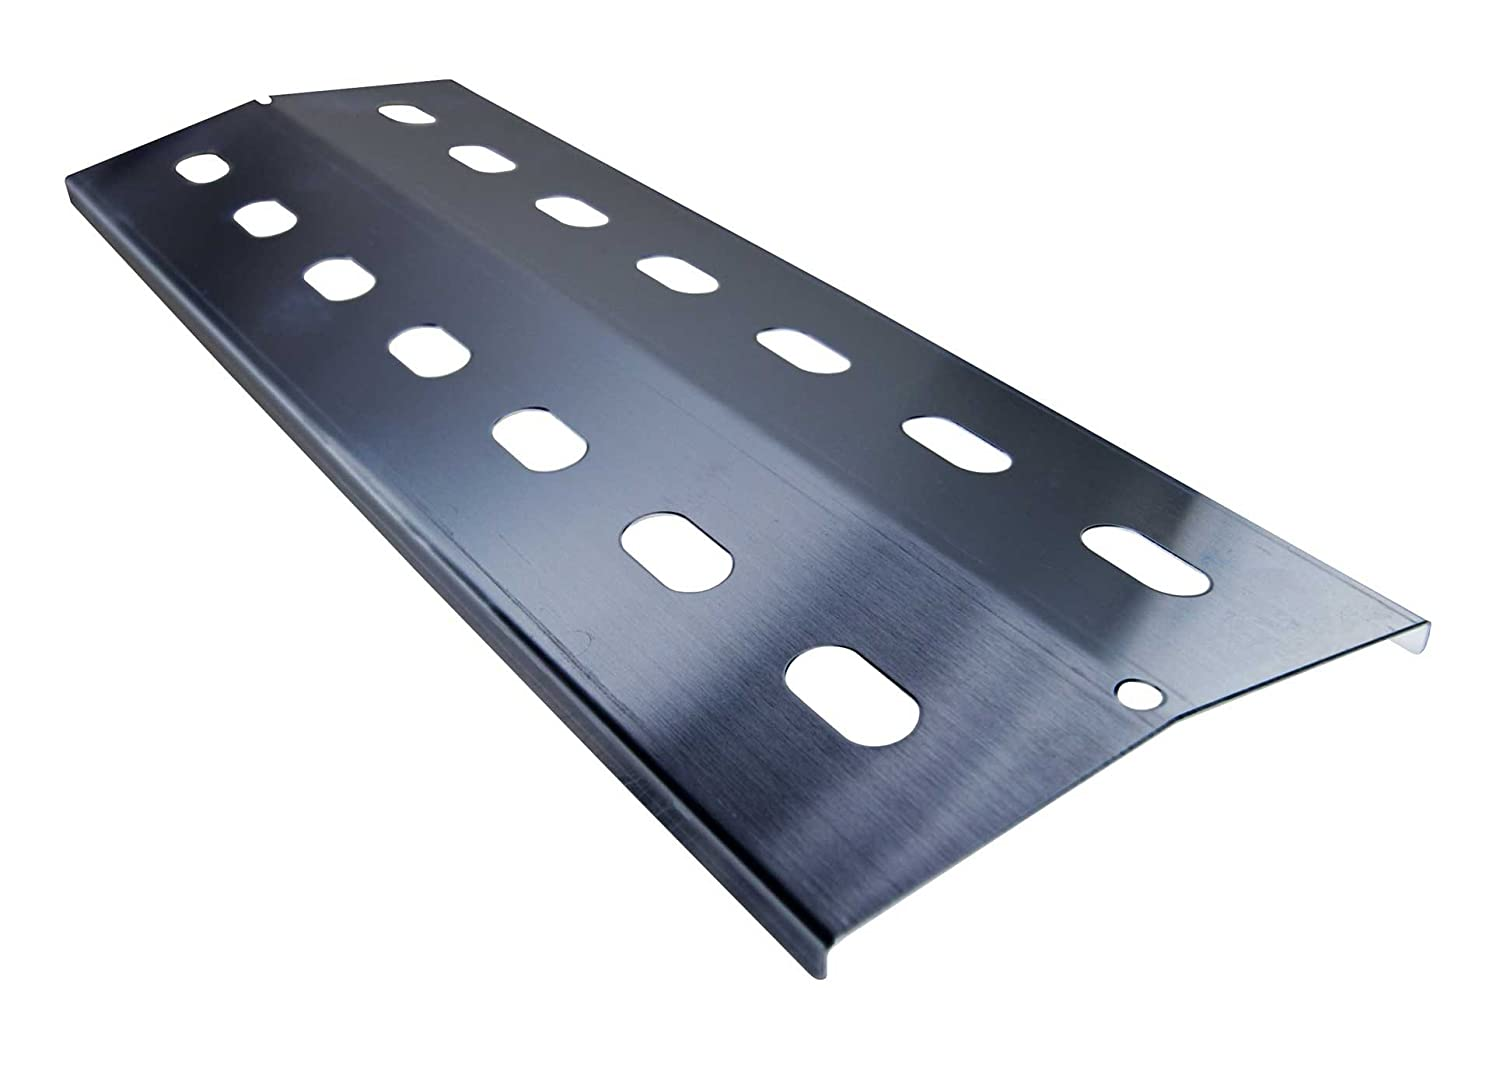 1 x stainless steel heat shield 41 x 14 cm for gas barbecue, flame diffuser AKTIONA